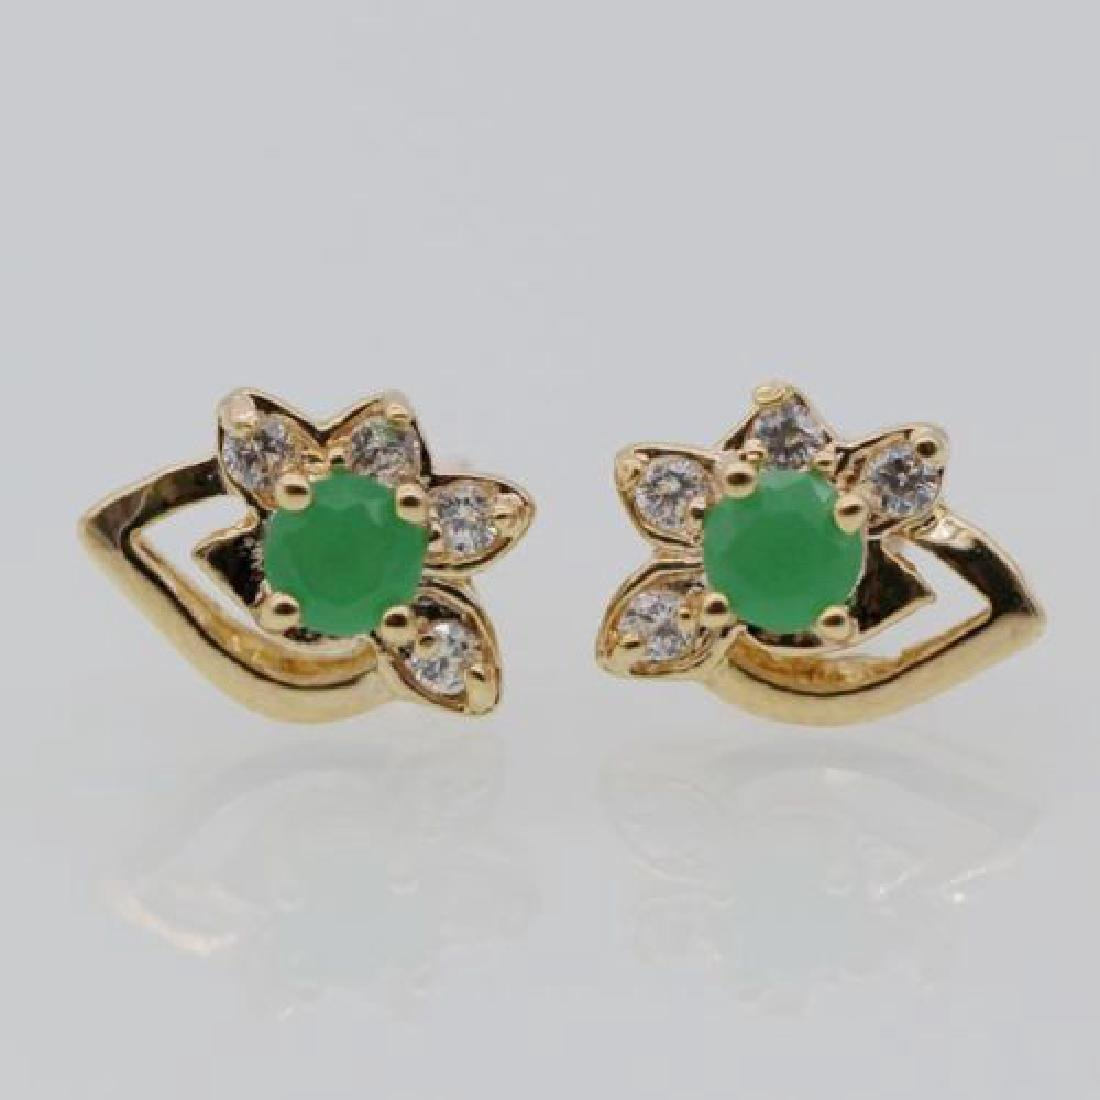 Flower Emerald White Zircon Stud Earring 18k Gold Plate